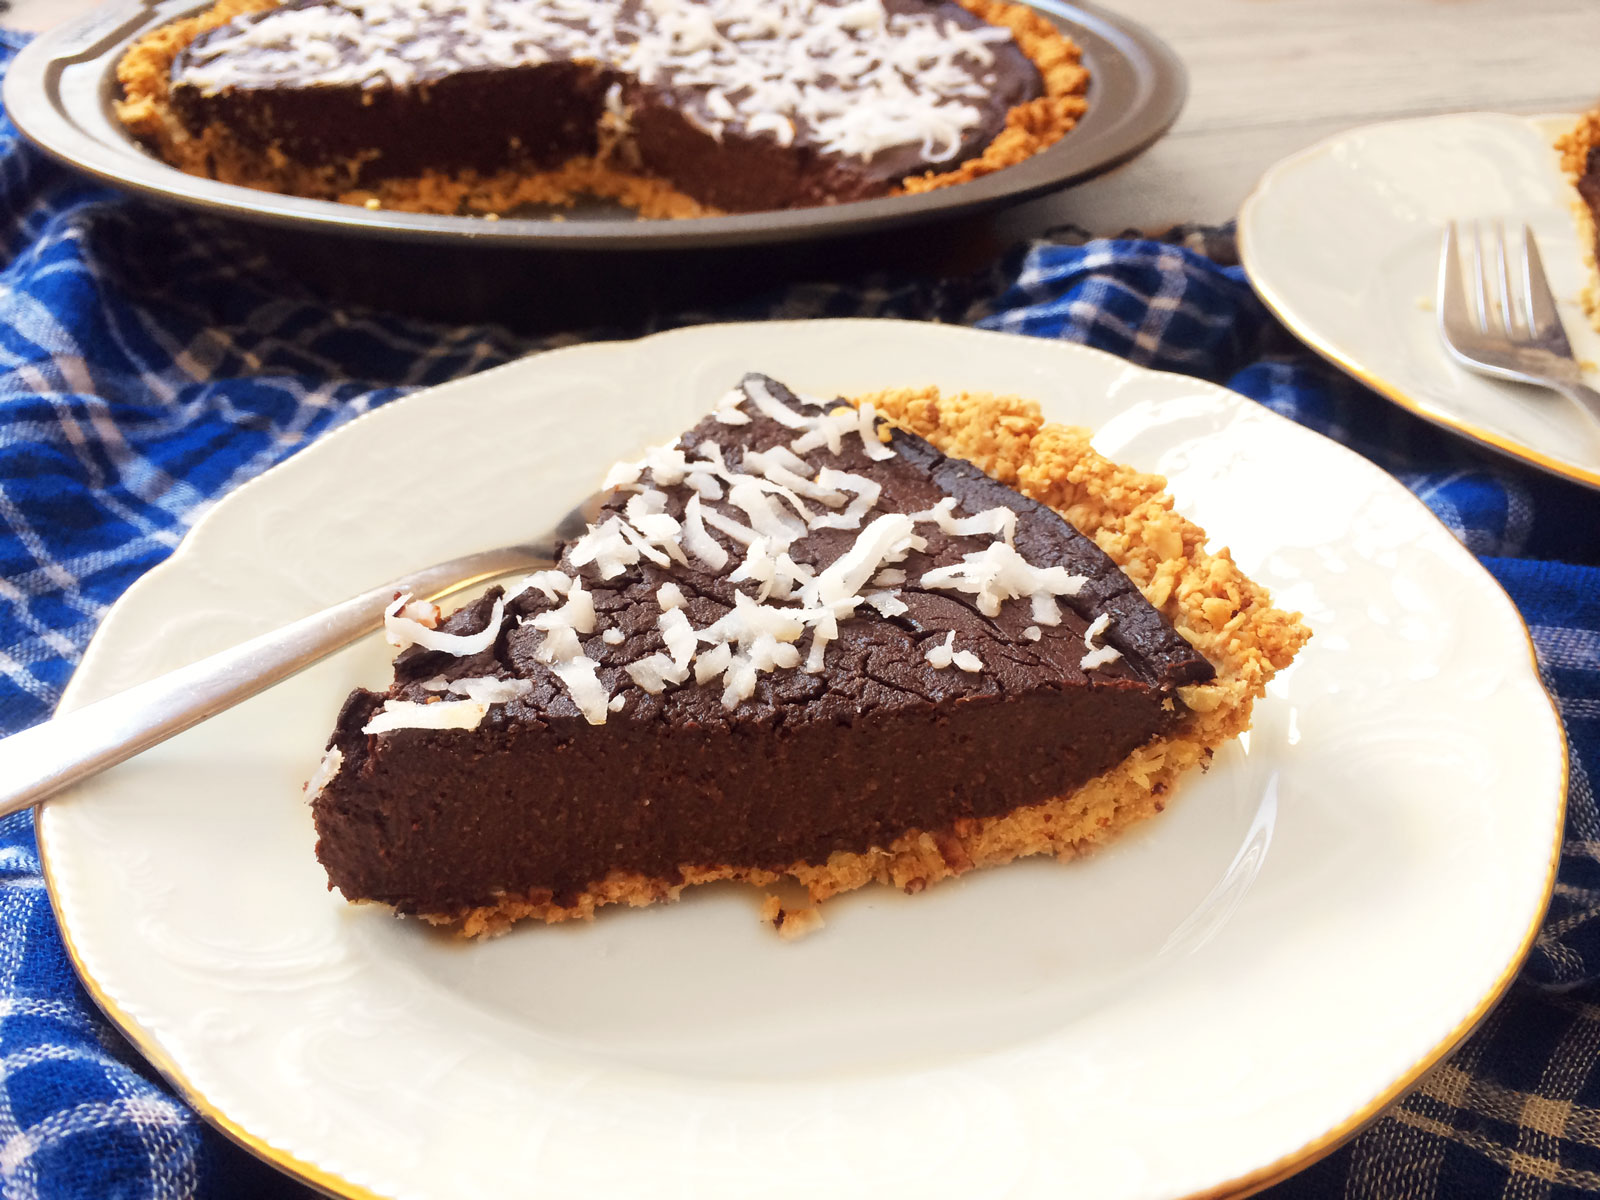 Chocolate Coconut Pie with Peanut Butter and Oats Crust